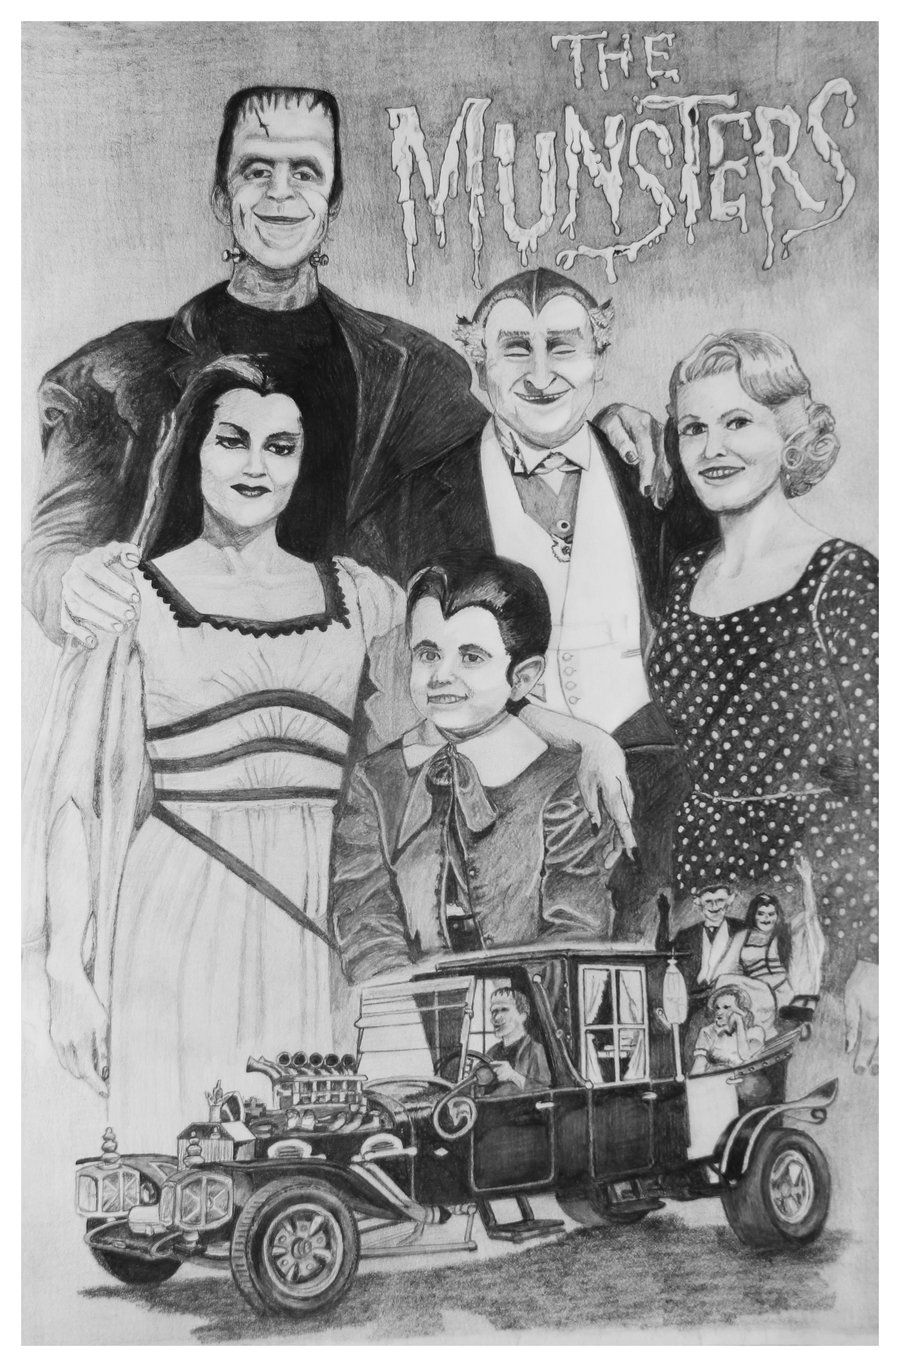 The Munsters (TV 1964-66) A family of friendly monsters have misadventures never quite realising why people react to them so strangely.